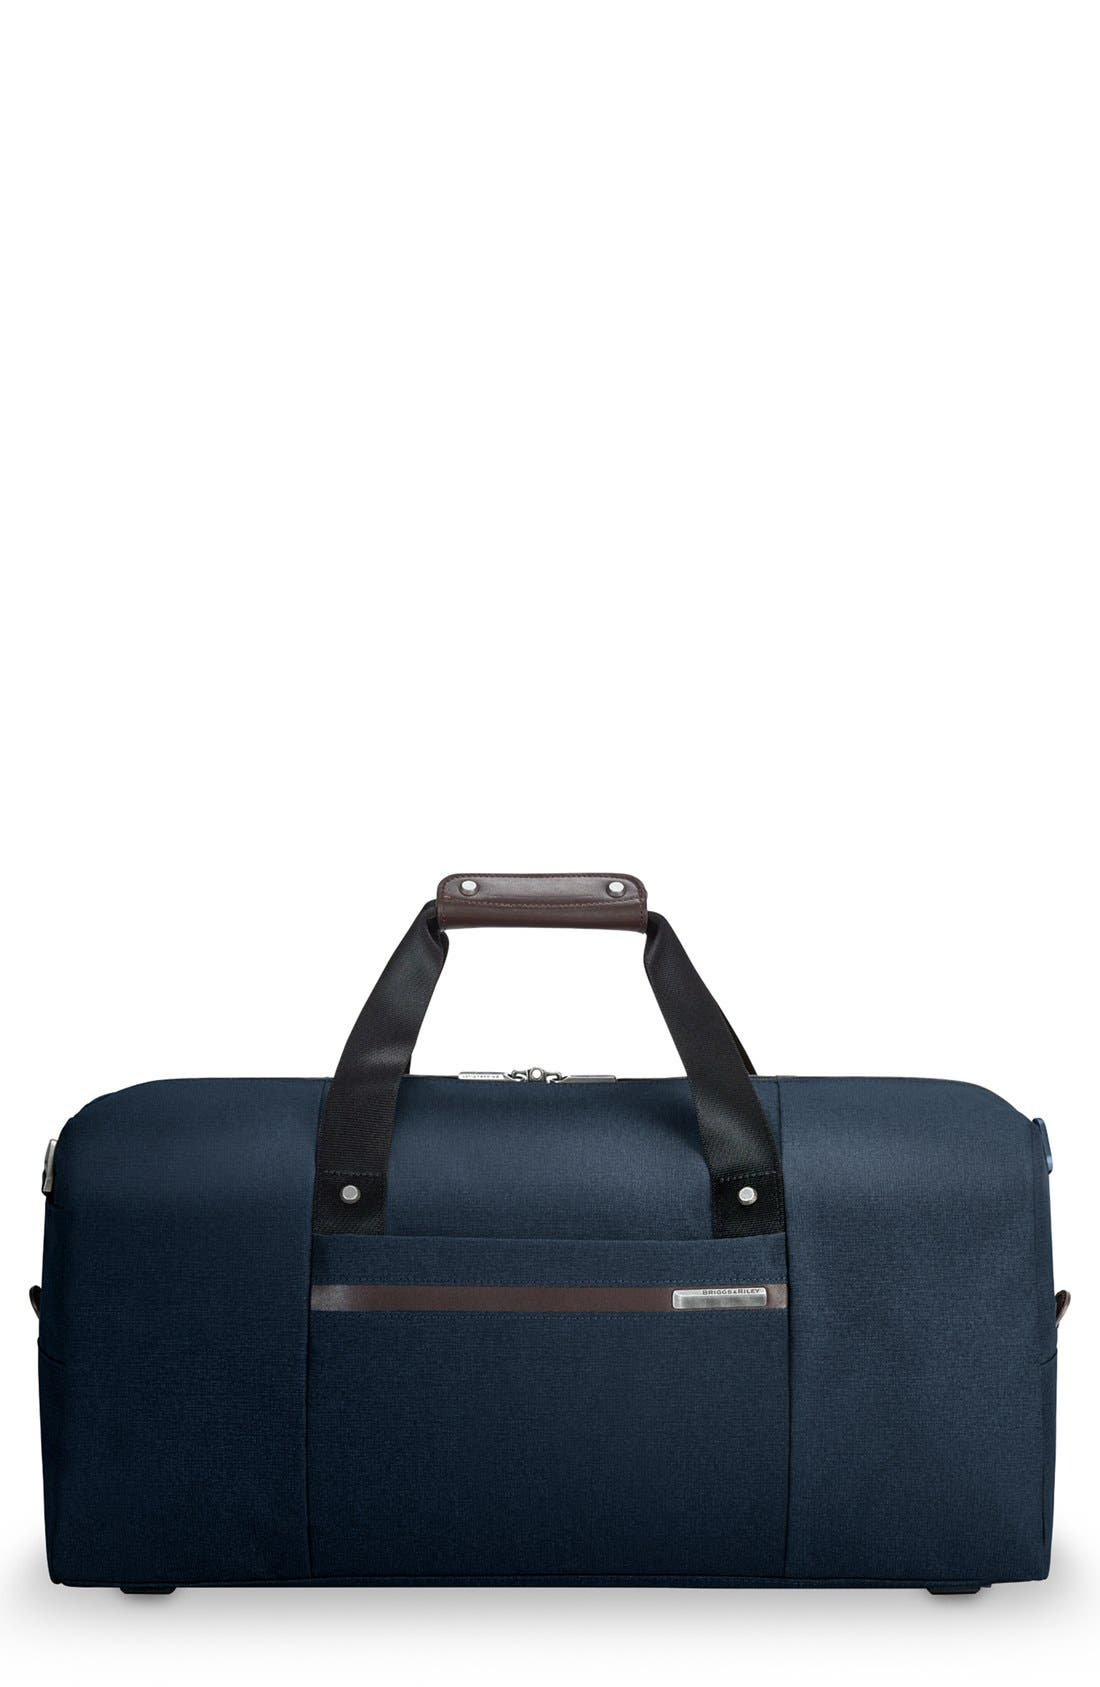 Kinzie Street - Simple Duffel Bag,                         Main,                         color, Navy Blue